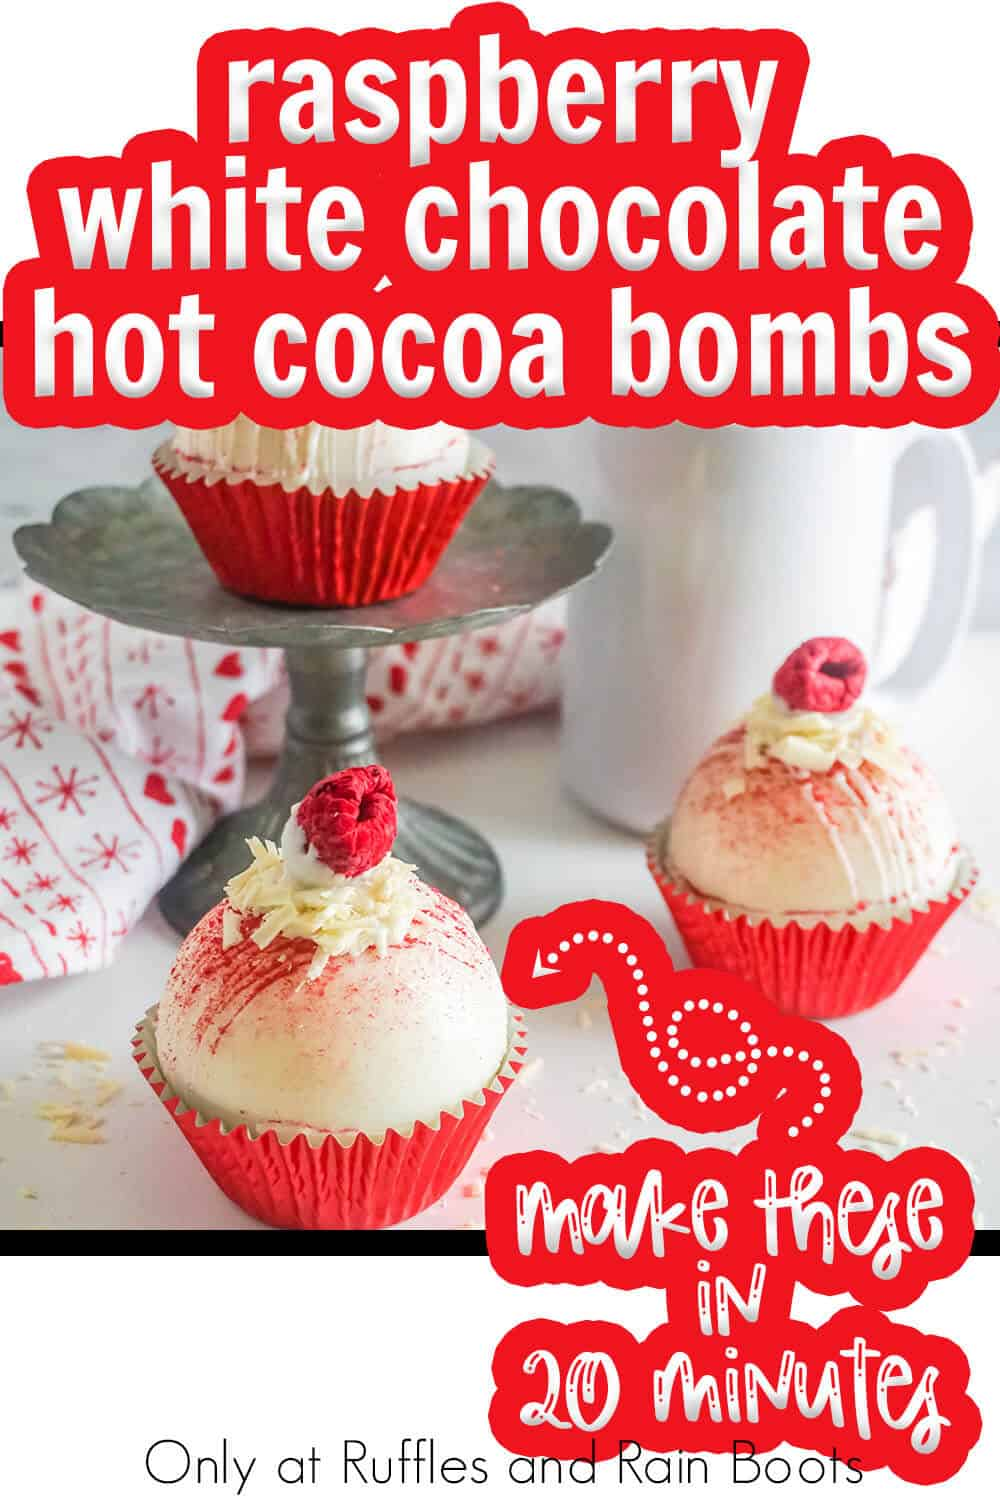 DIY hot chocolate bombs with white chocolate and raspberry with text which reads raspberry white chocolate hot cocoa bombs make these in 20 minutes